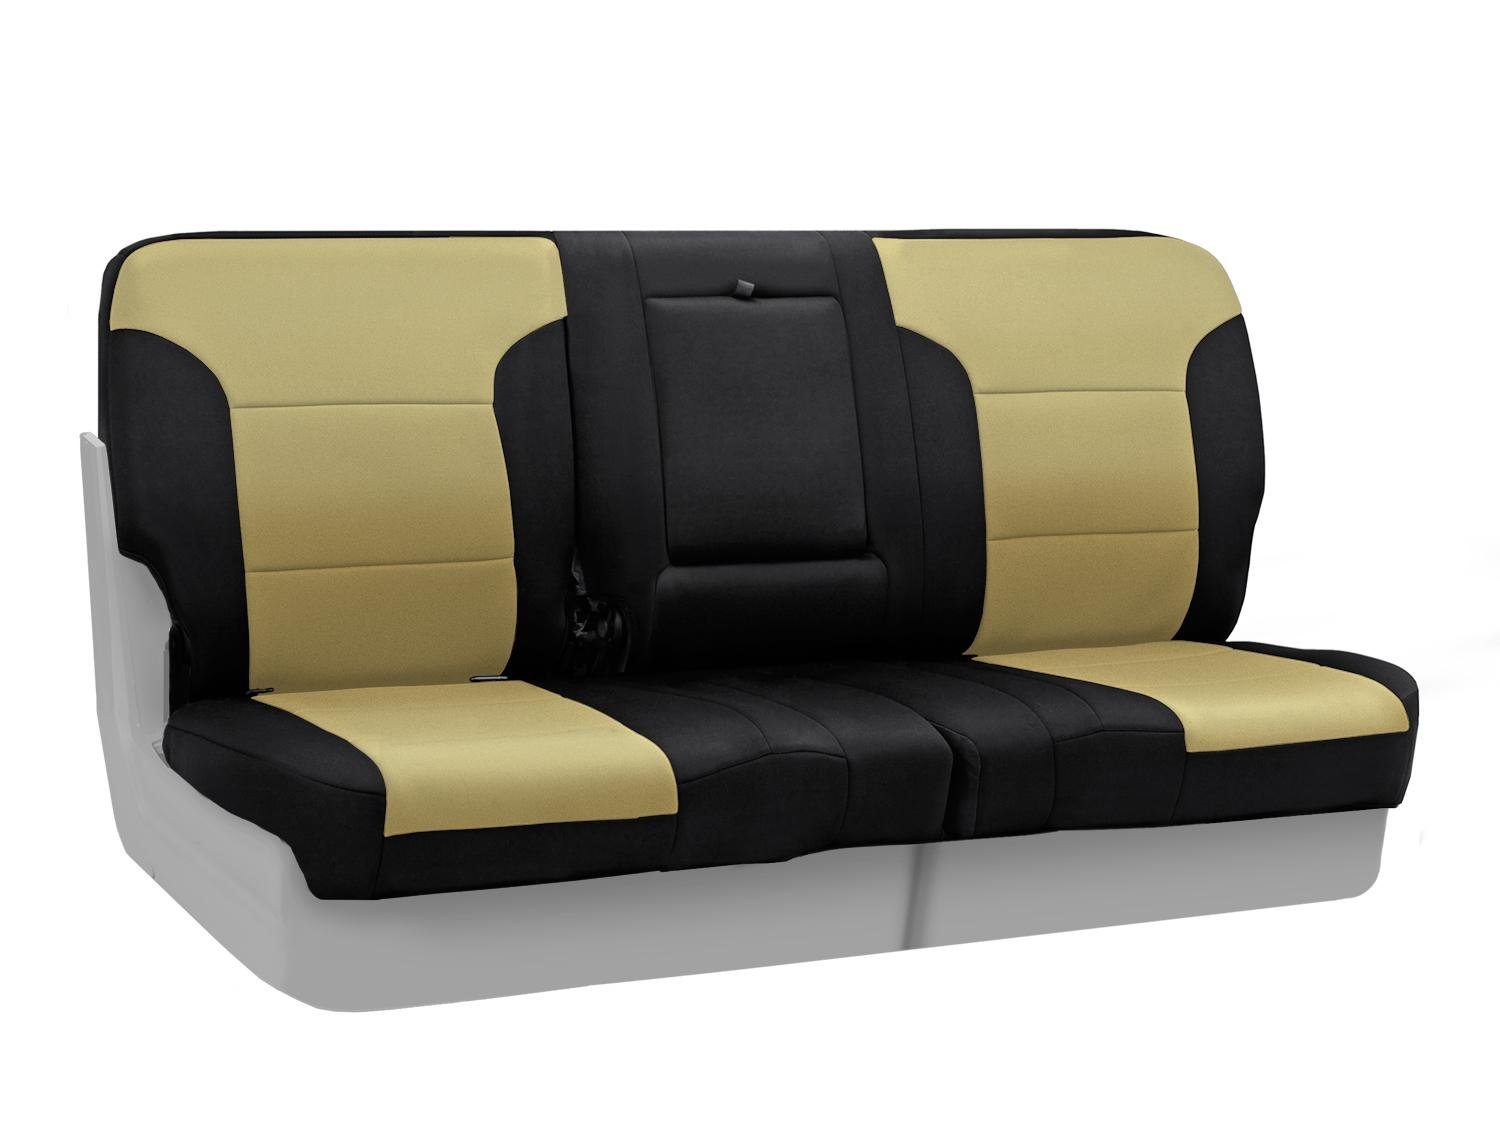 CSC2A5PR9283 Tan with Black Sides Neosupreme 2-Tone Coverking Custom Fit Rear 60//40 Back Seat Cover for Select Porsche Panamera Models